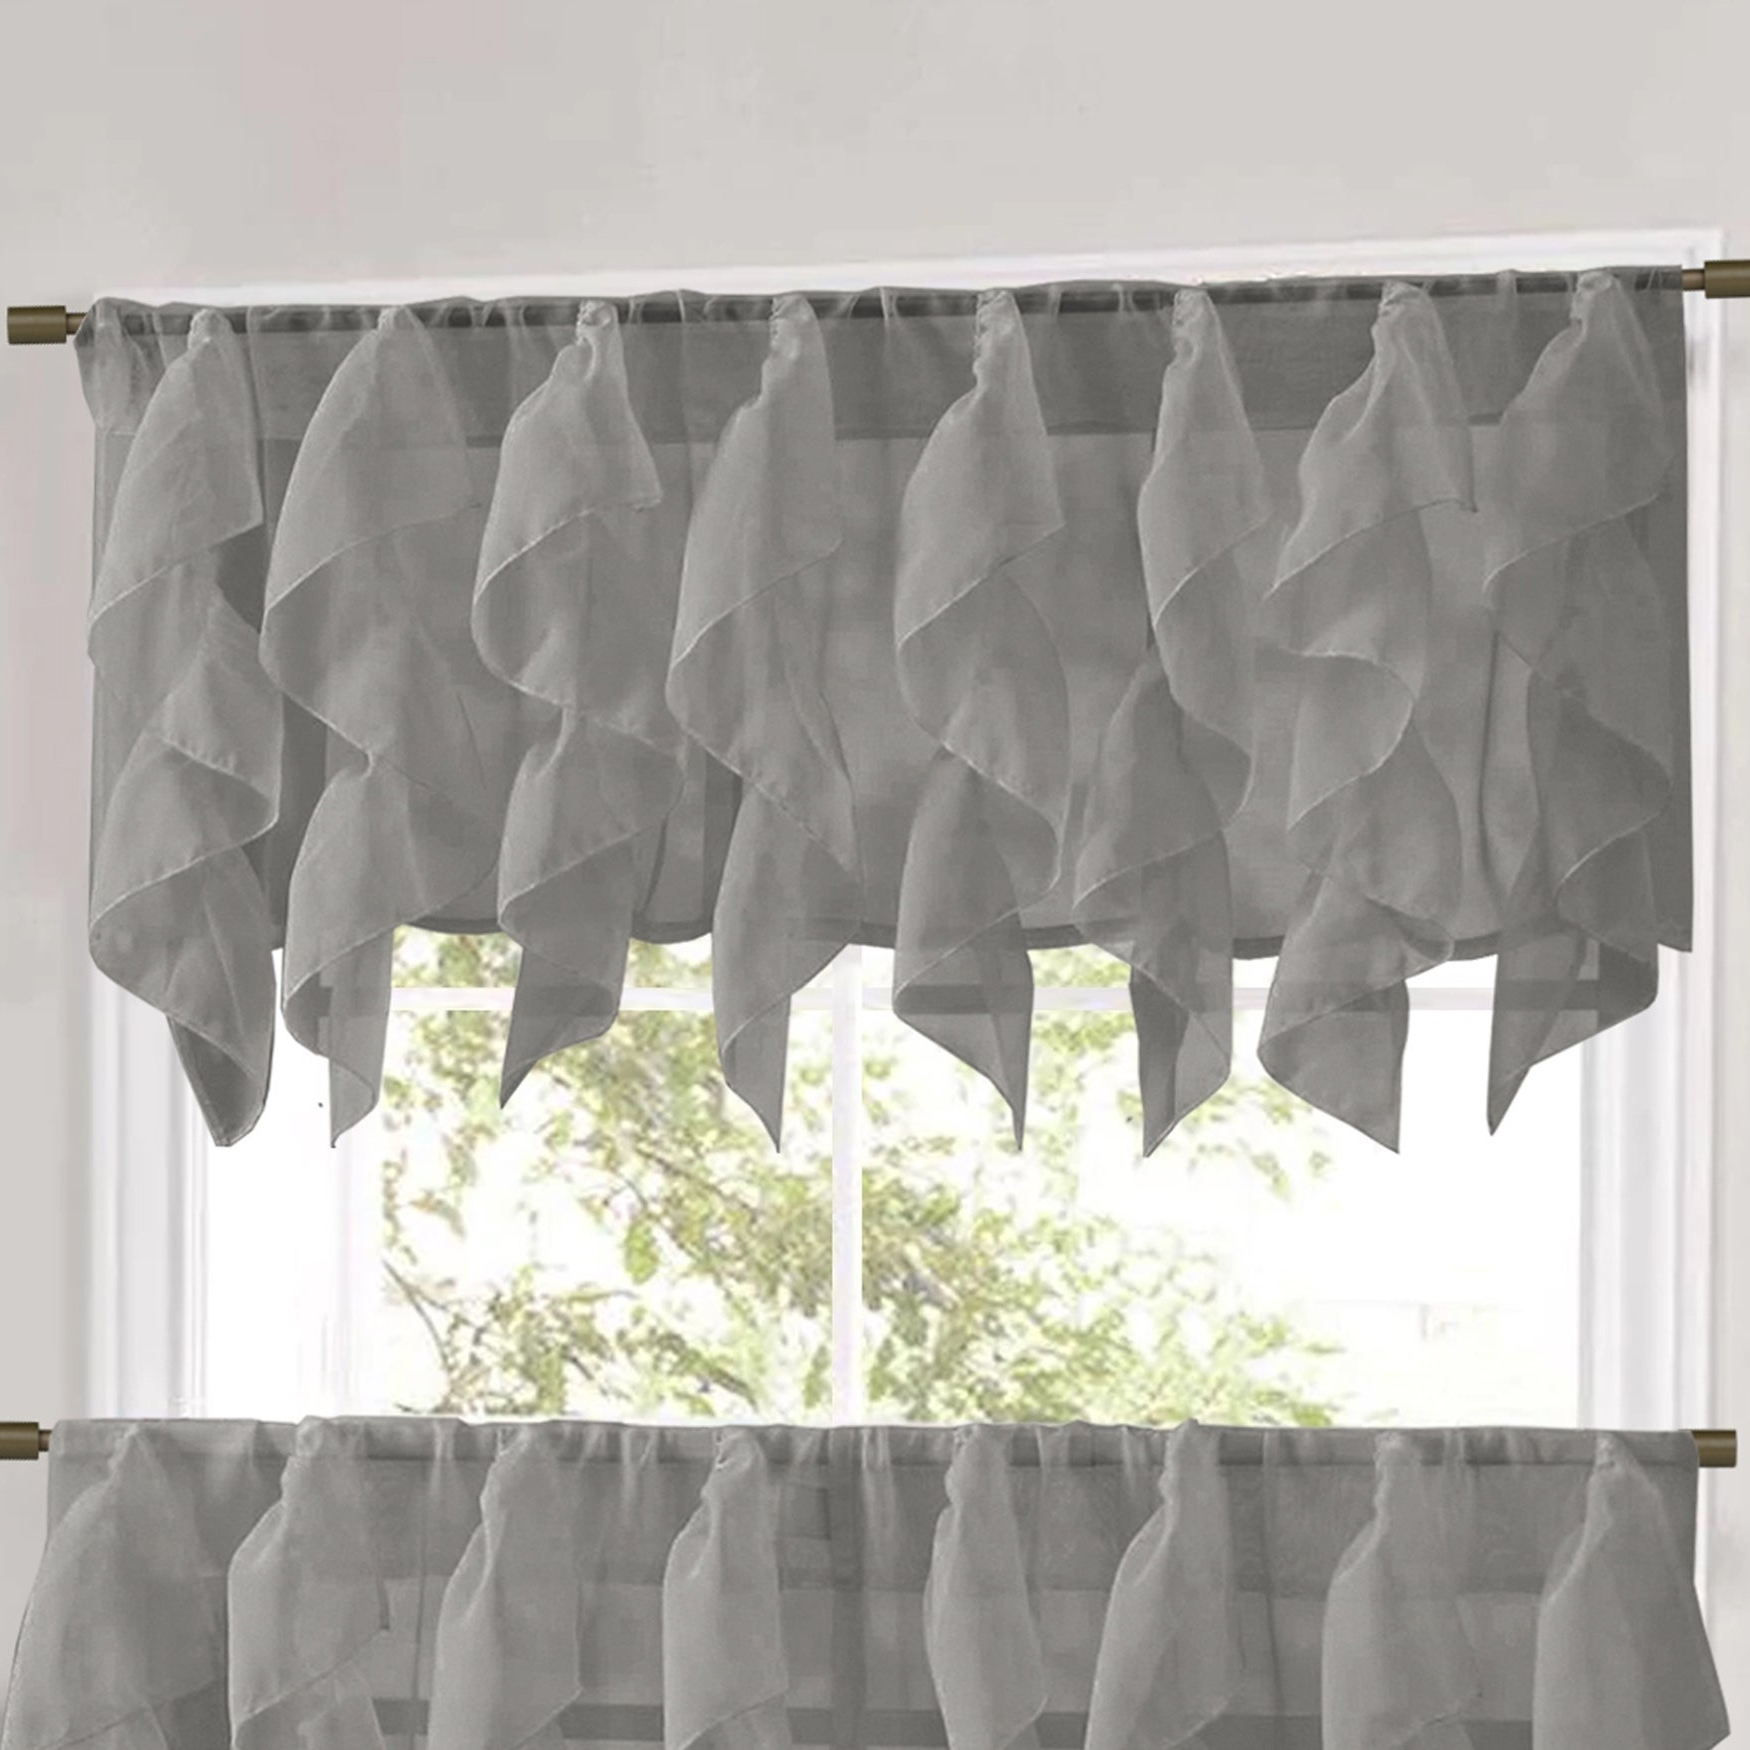 Vertical Ruffled Waterfall Valances And Curtain Tiers With Regard To Newest Sweet Home Collection Grey Vertical Ruffled Waterfall Valance And Curtain Tiers (View 5 of 20)